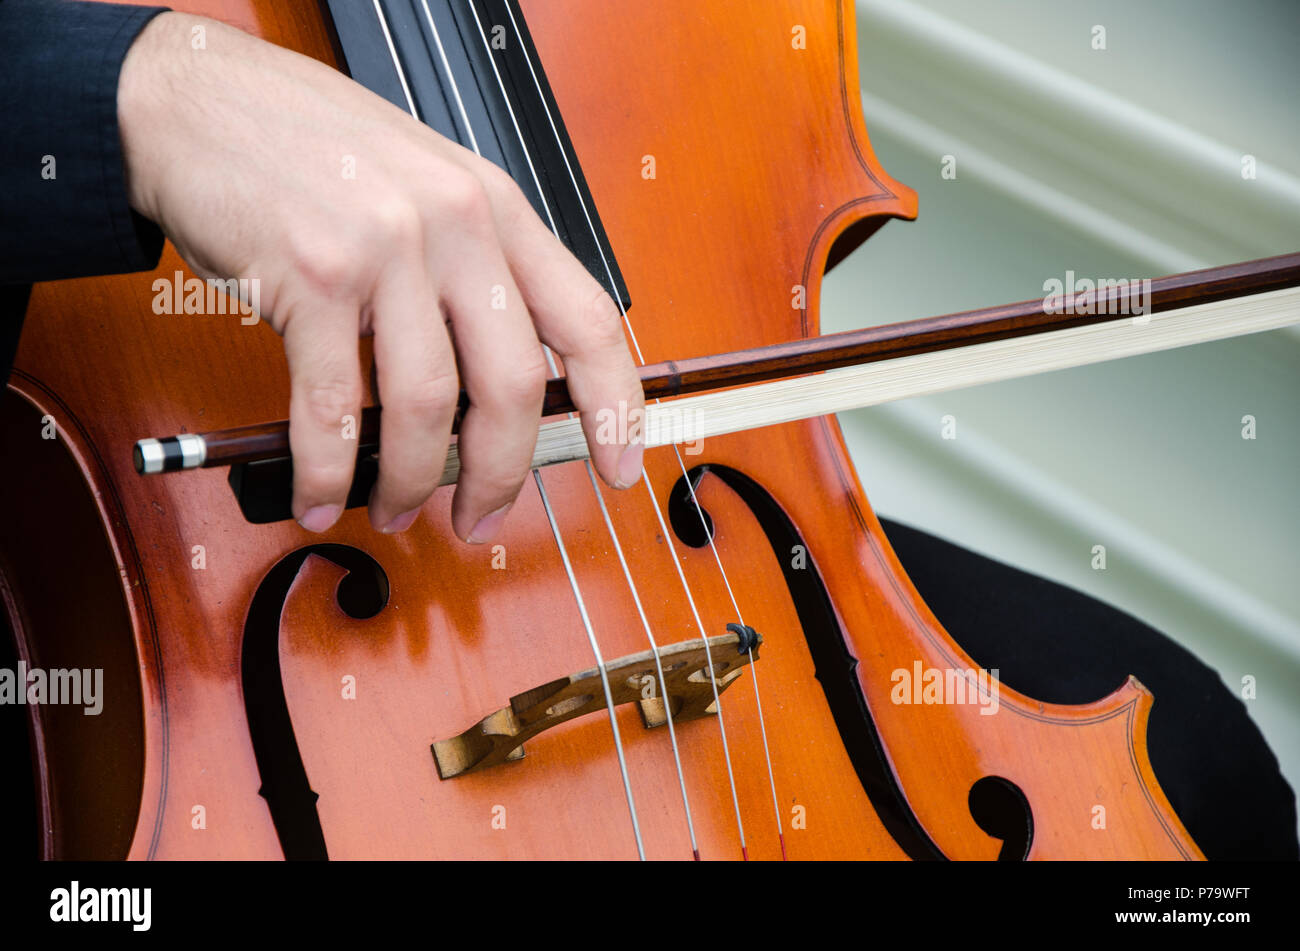 Art and artist. Young elegant man violinist playing violin on black. Classical music. little boy musical instrument. - Stock Image